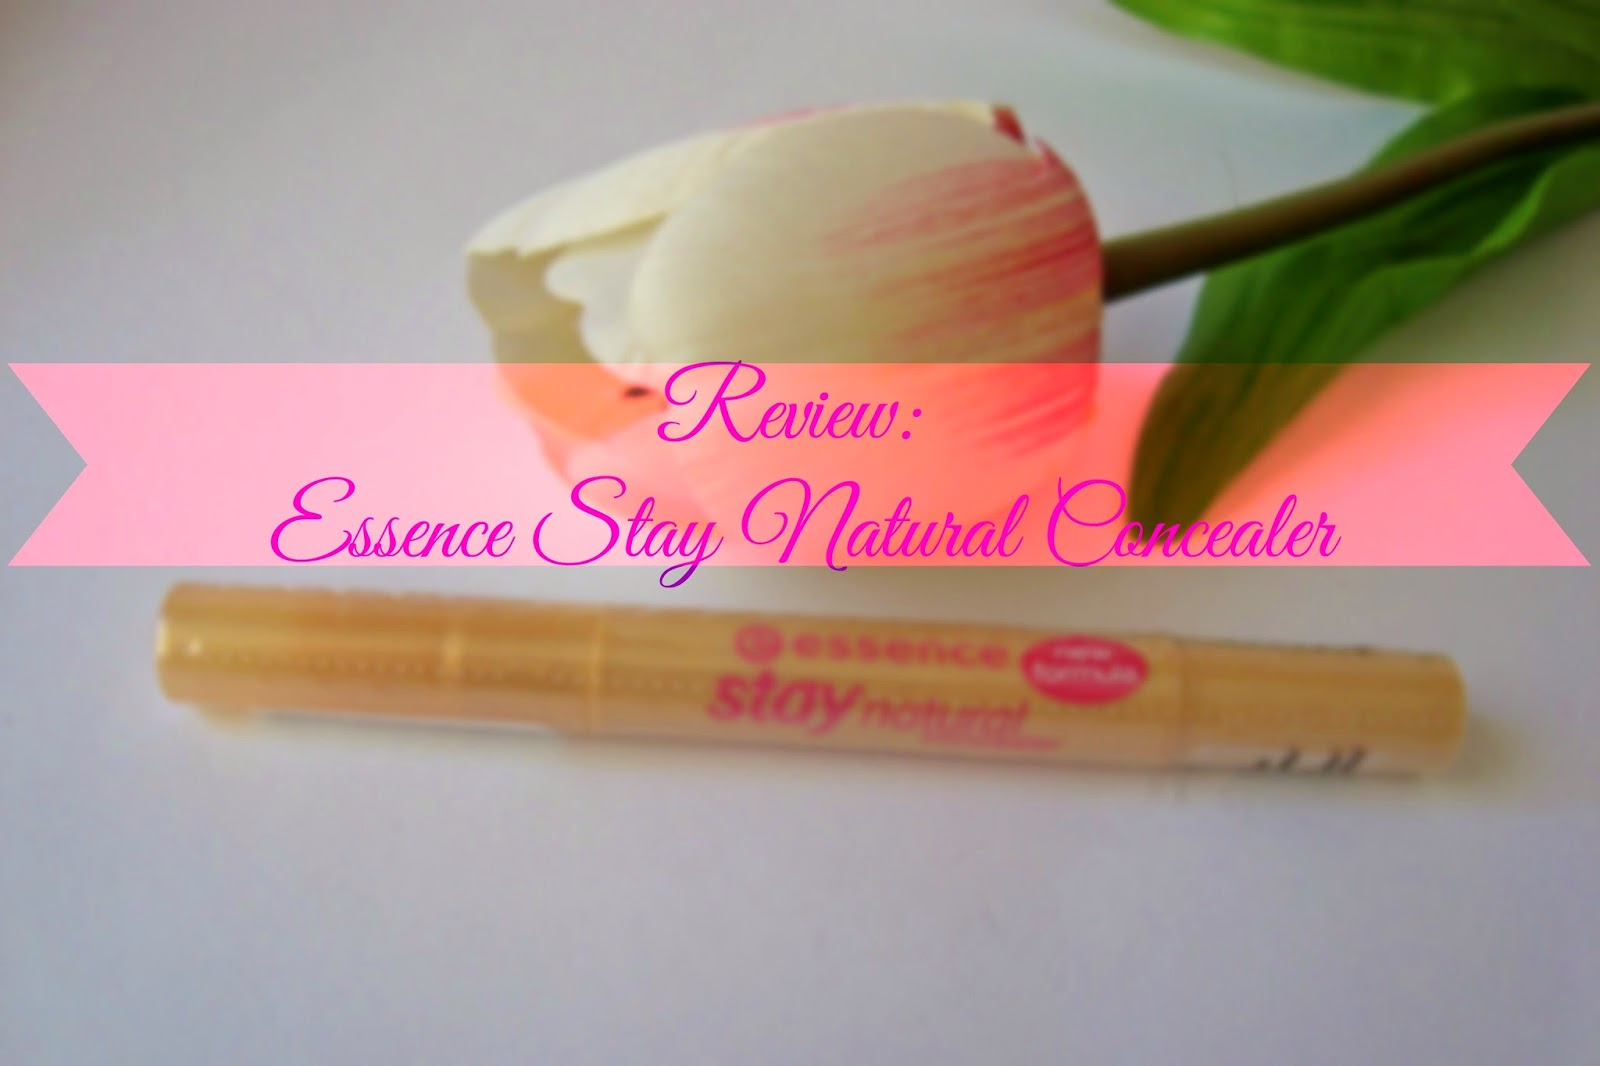 Essence Stay Natural concealer review